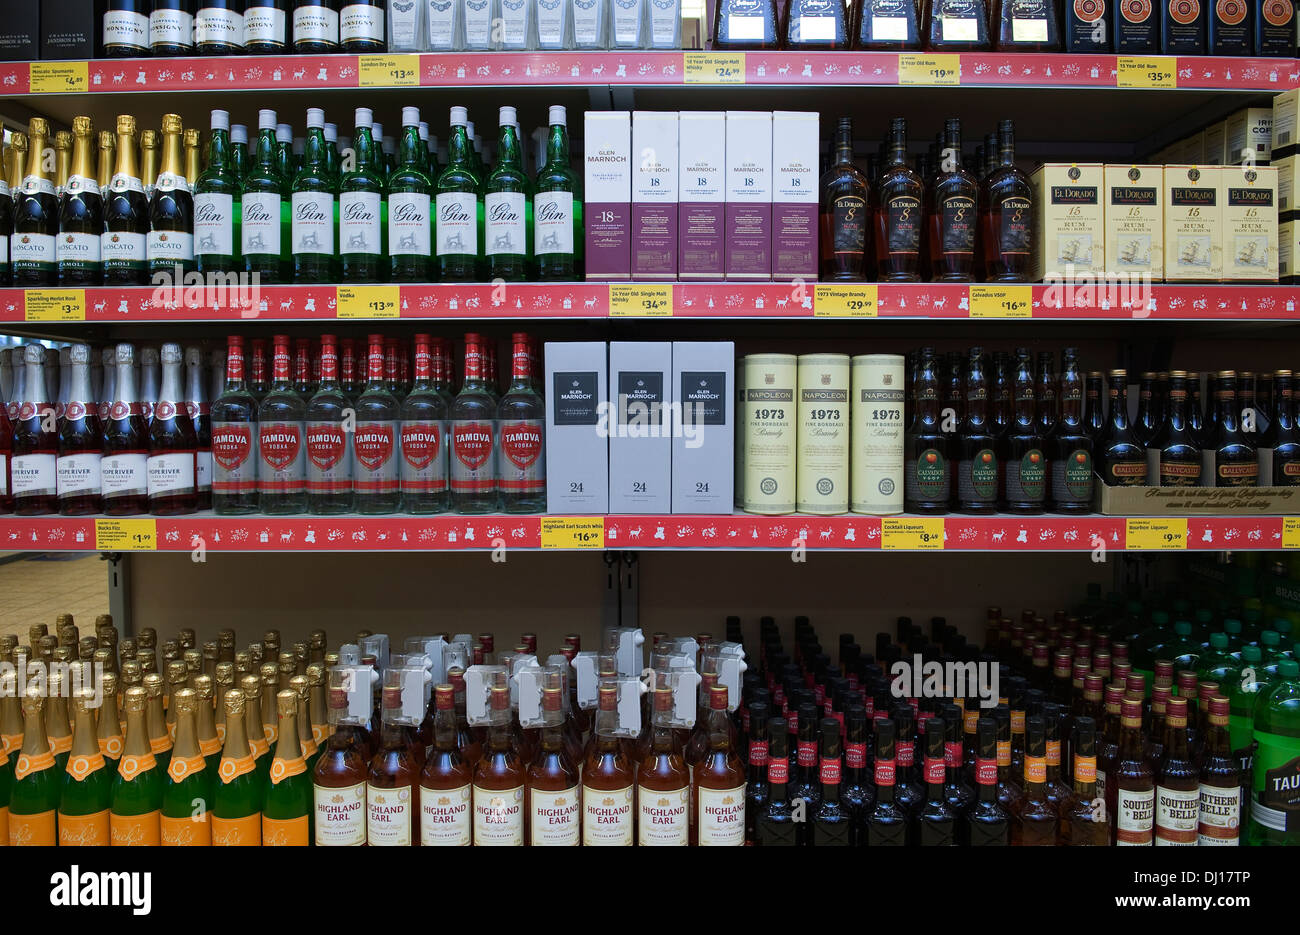 Shelves of cheap alcohol including wine, spirits and beer, in budget UK supermarket Aldi. - Stock Image